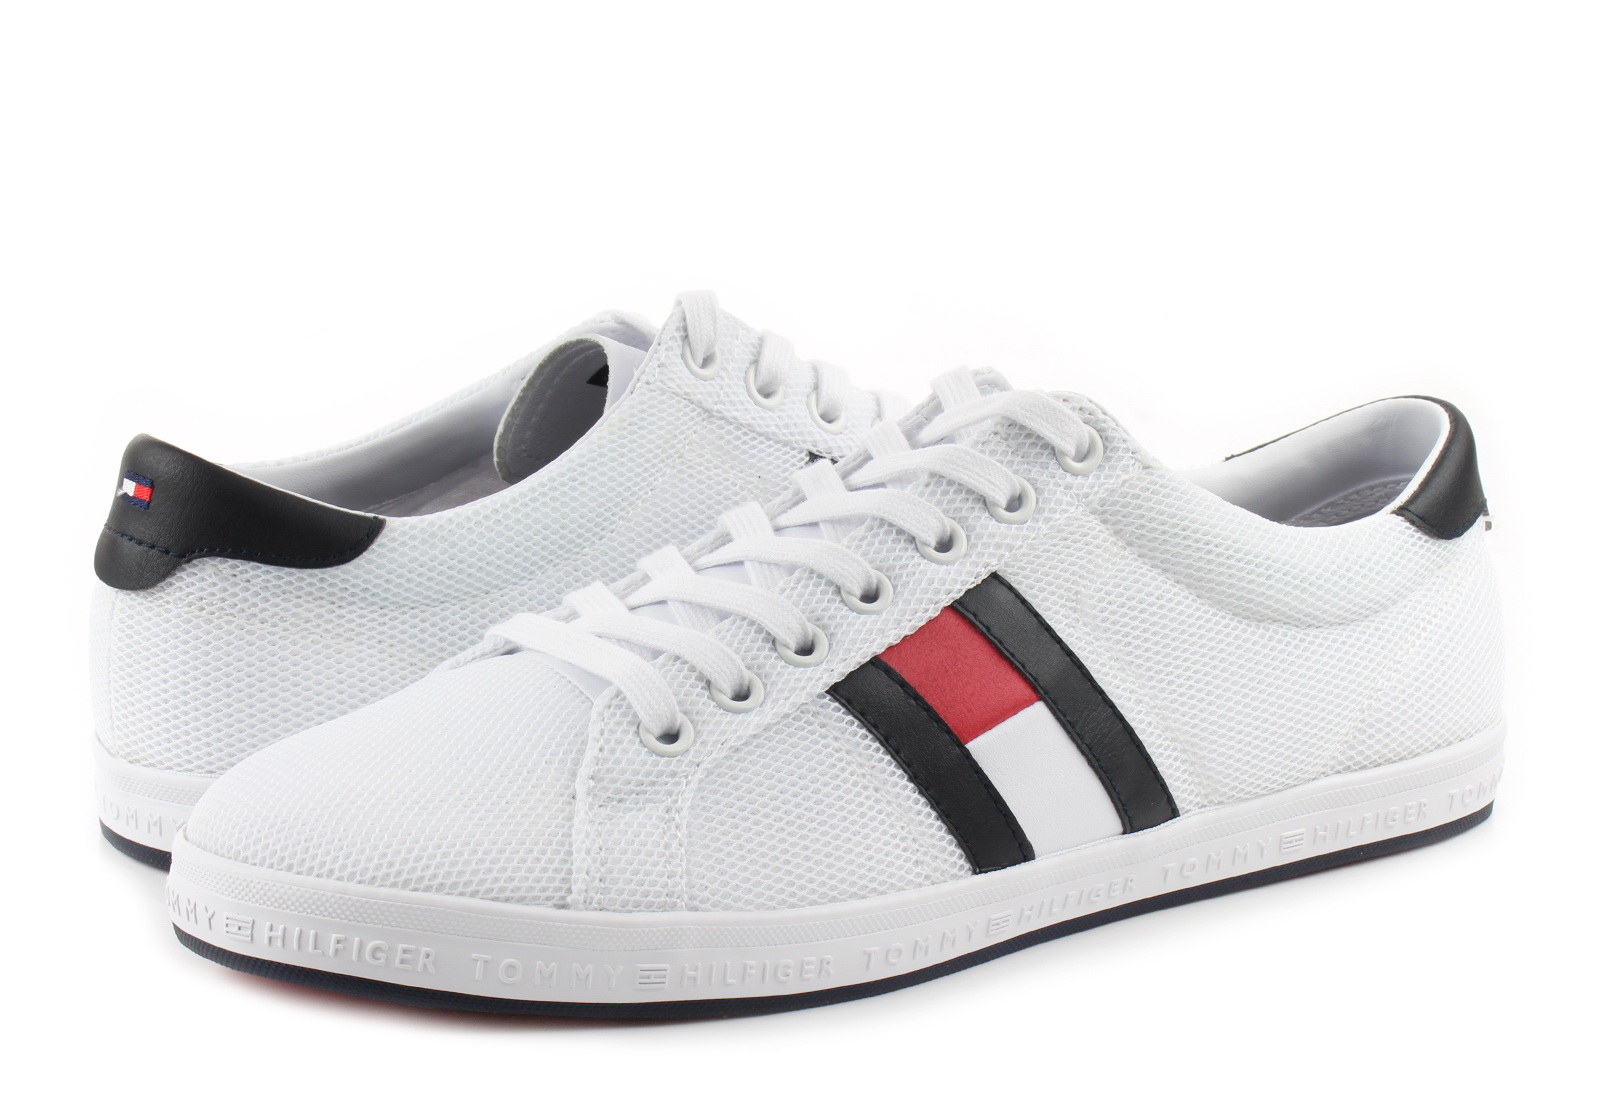 aa272b1c46 Tommy Hilfiger Cipő - Howell 7d2 - 19S-2202-100 - Office Shoes ...